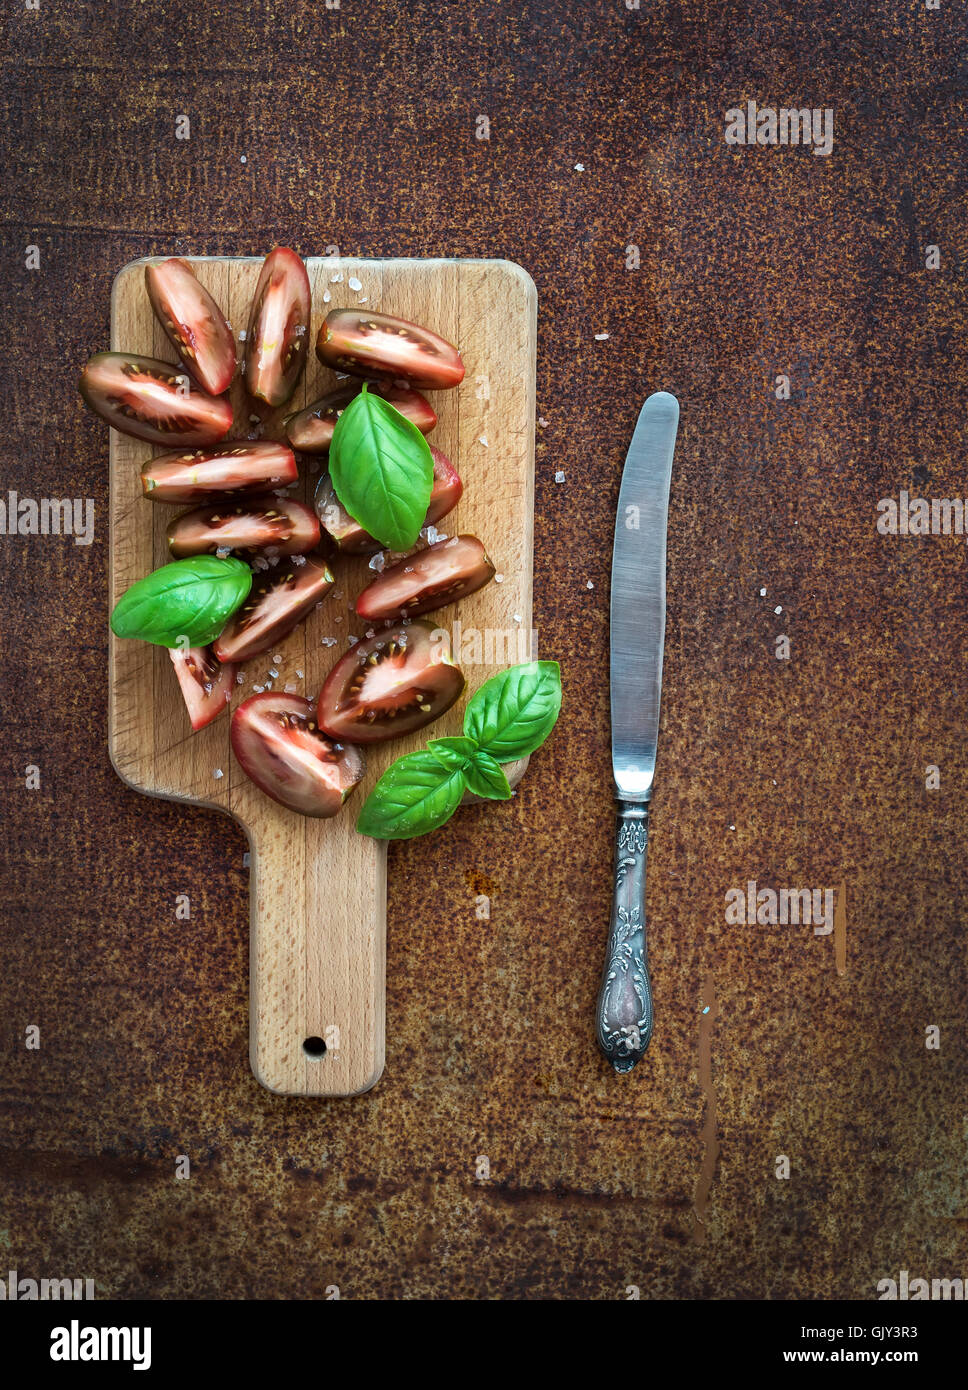 Fresh tomato slices with salt and basil leaves on wooden chopping board over grunge metal rusty background, top - Stock Image